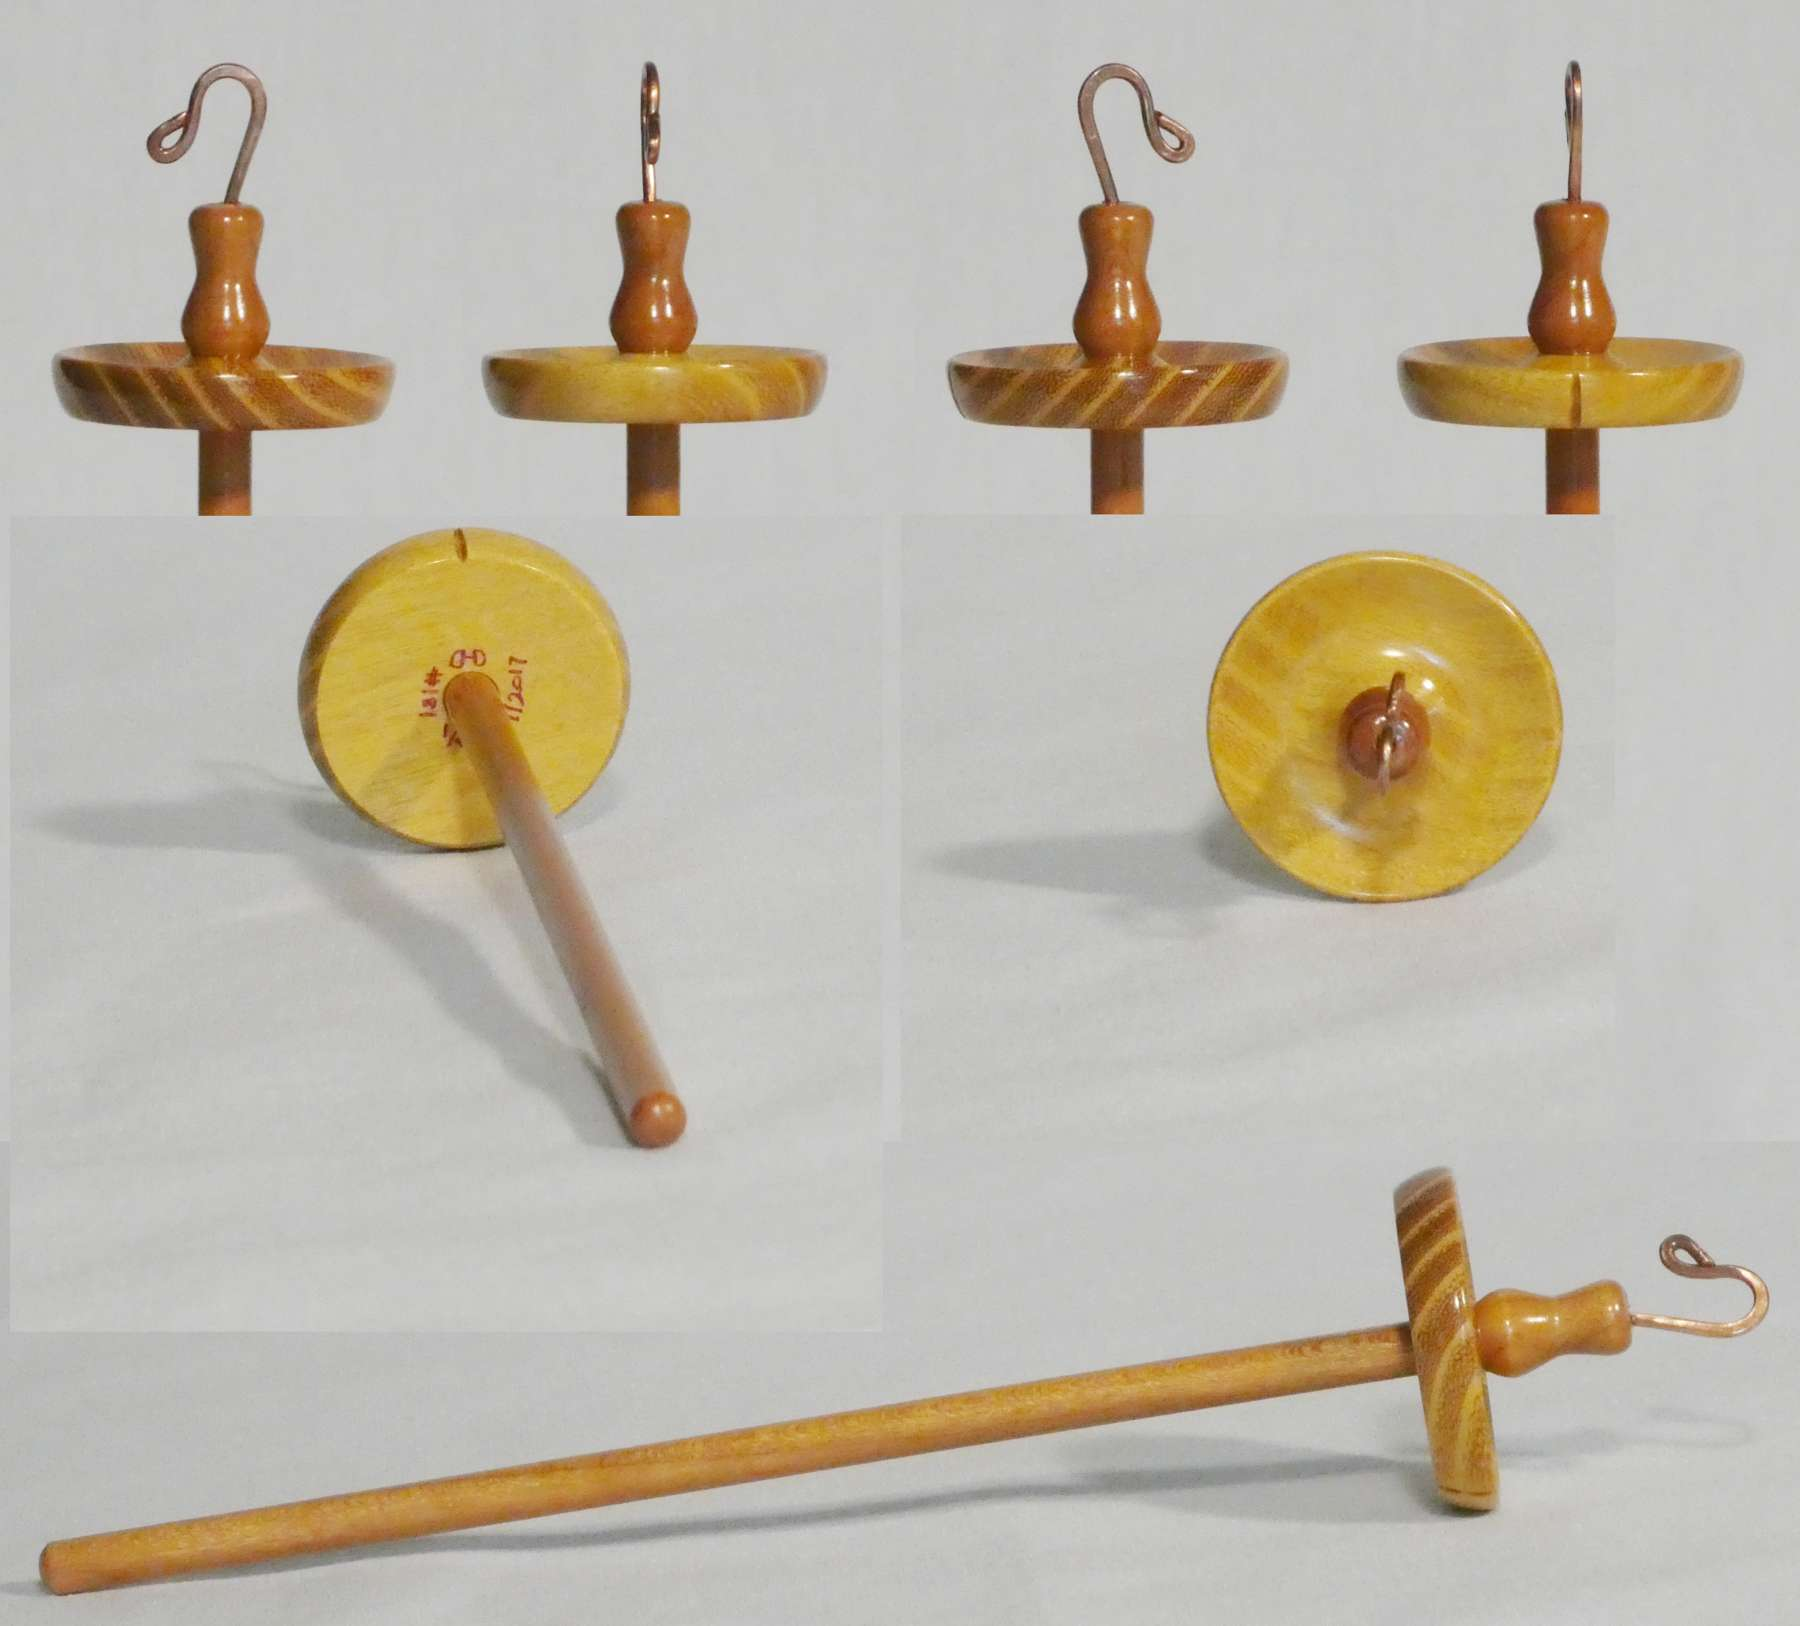 Top whorl suspended spindle for spinning lace weight yarn; hand turned from Osage Orange and Cherry wood with custom hook by Cynthia D. Haney signed number 181.